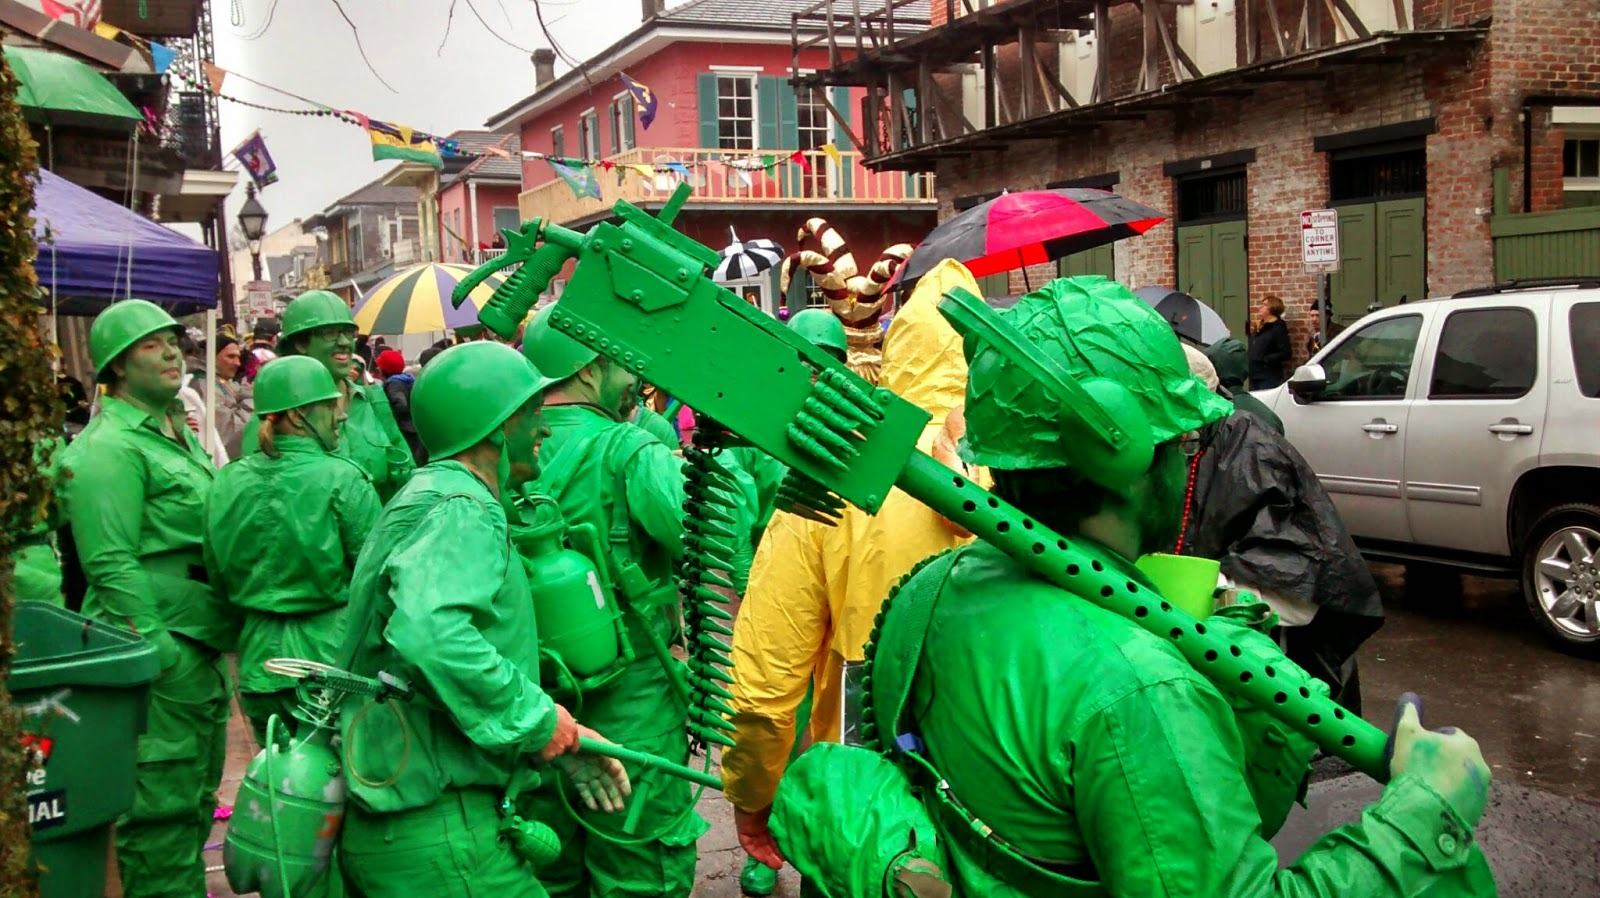 Caption: One of these army men is me at Mardi Gras